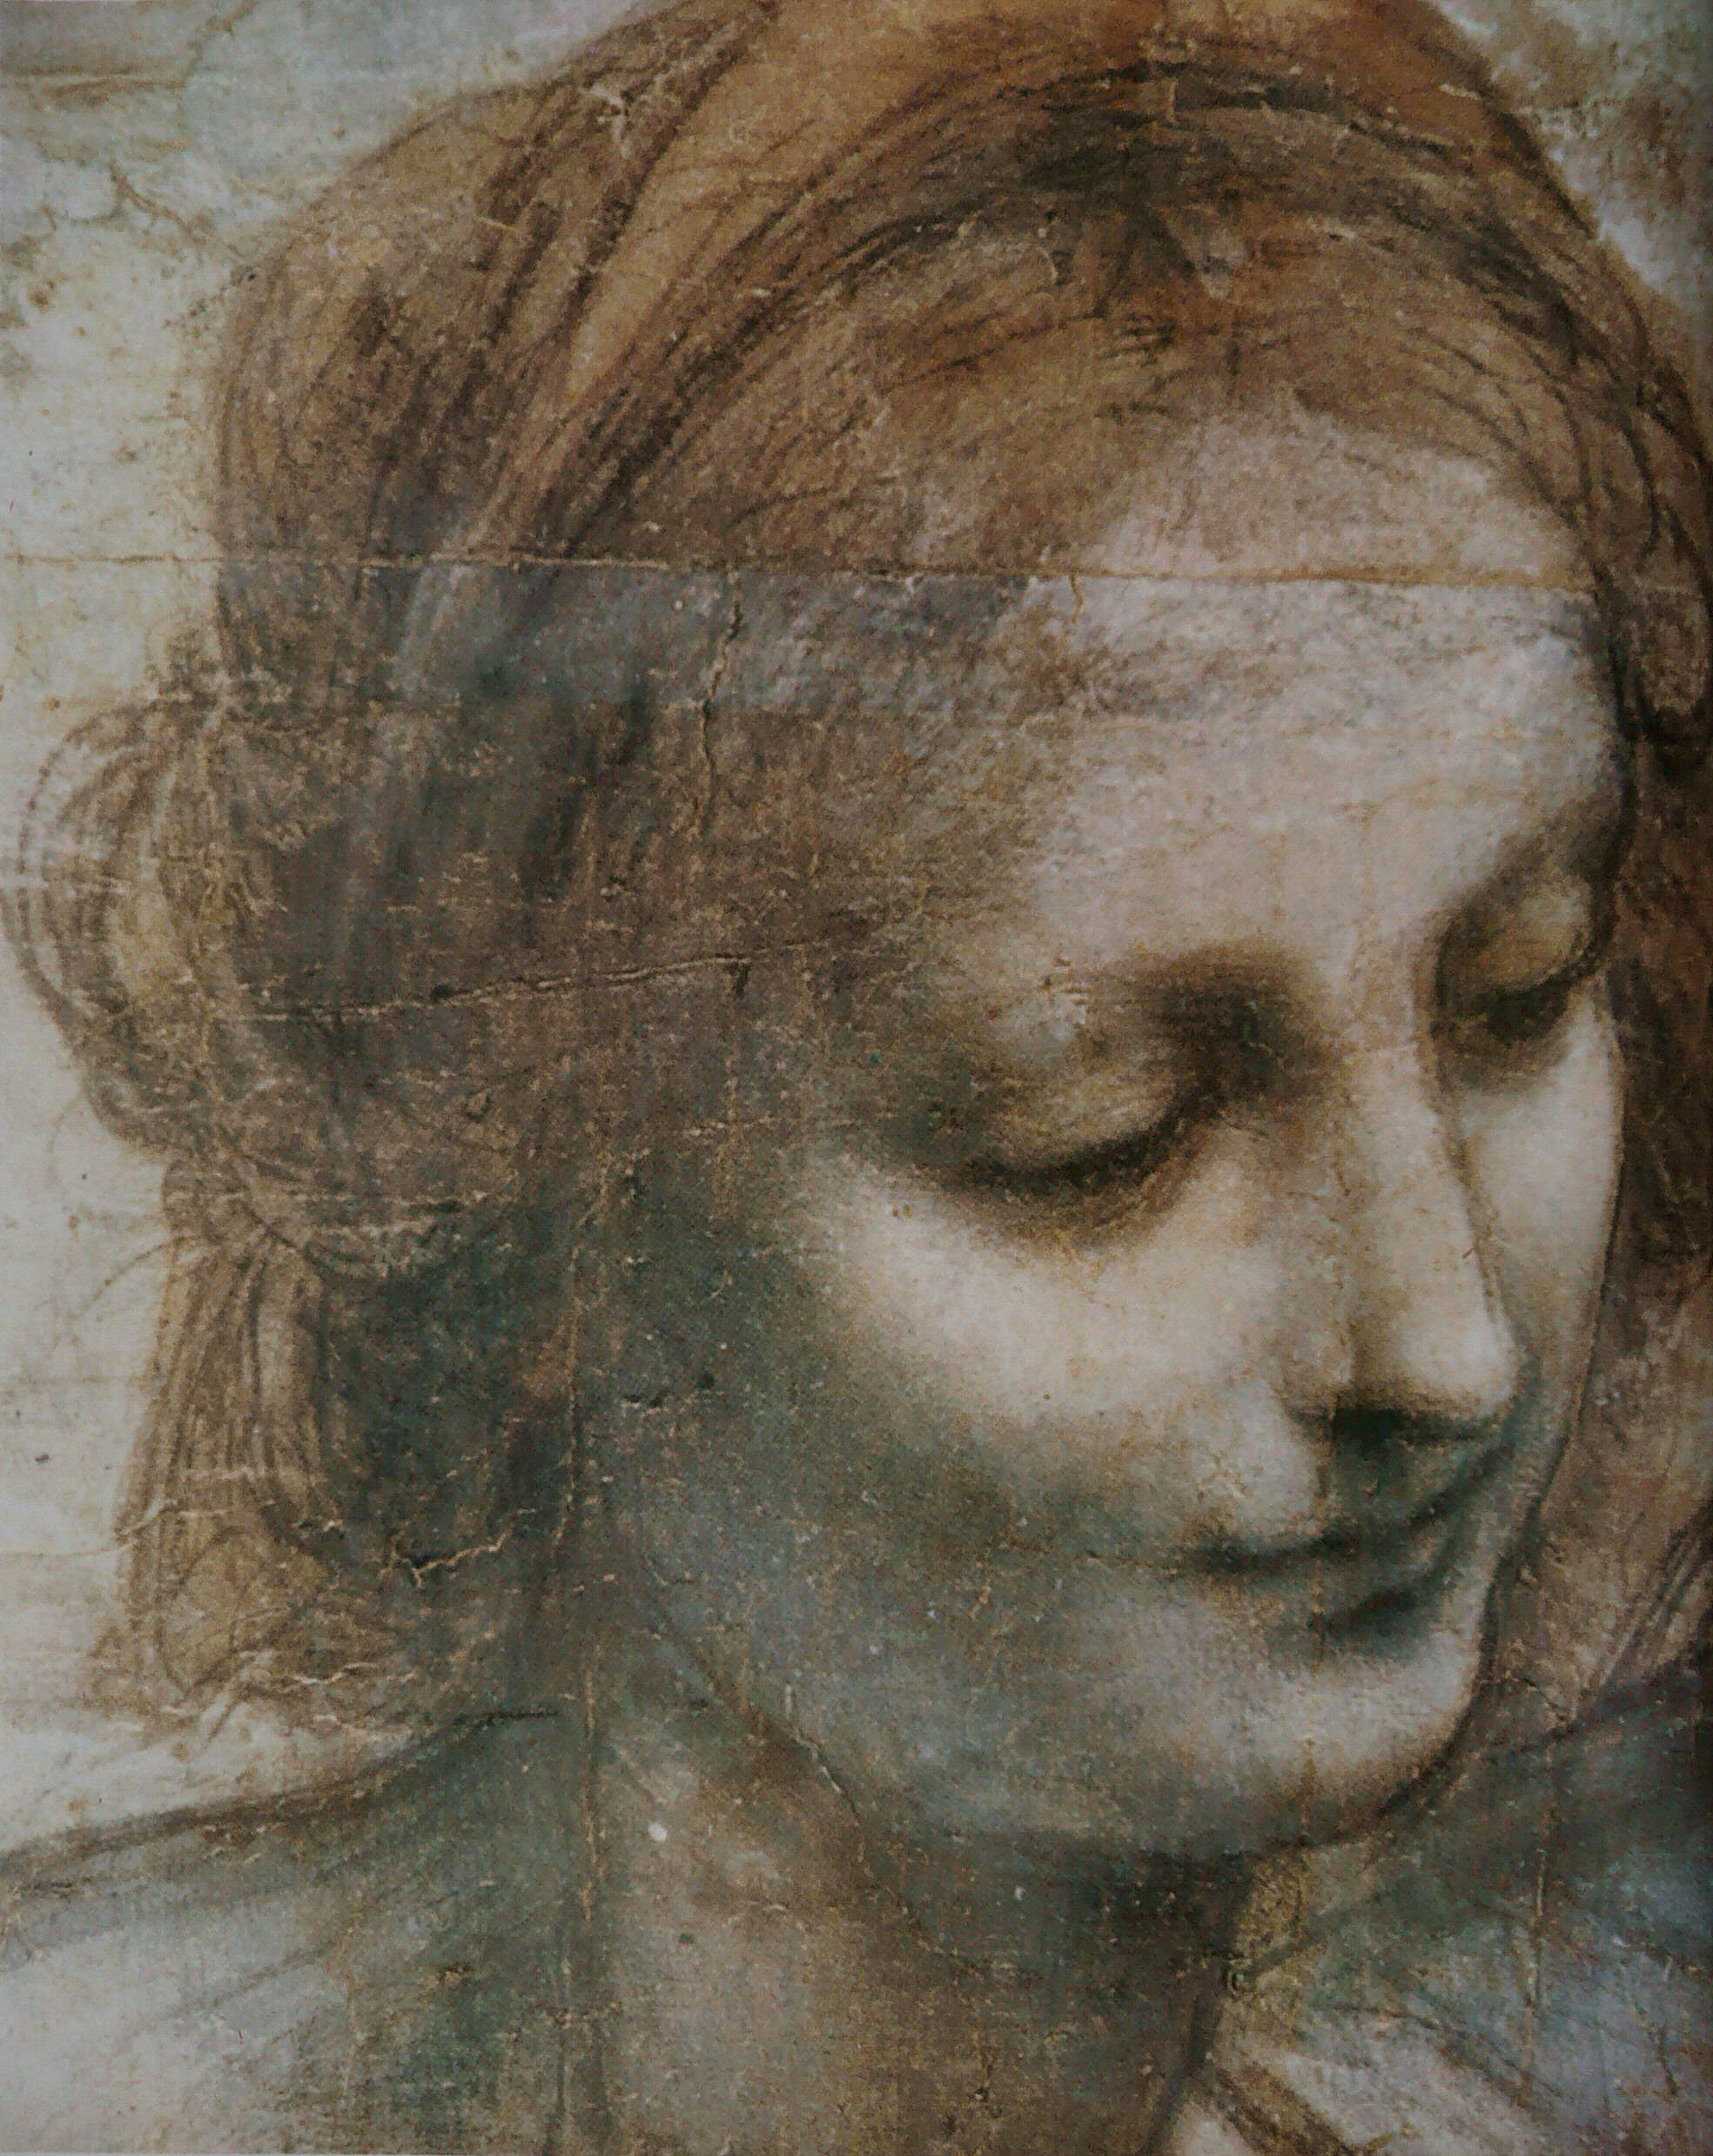 Was Michelangelo a better artist than Leonardo da Vinci?